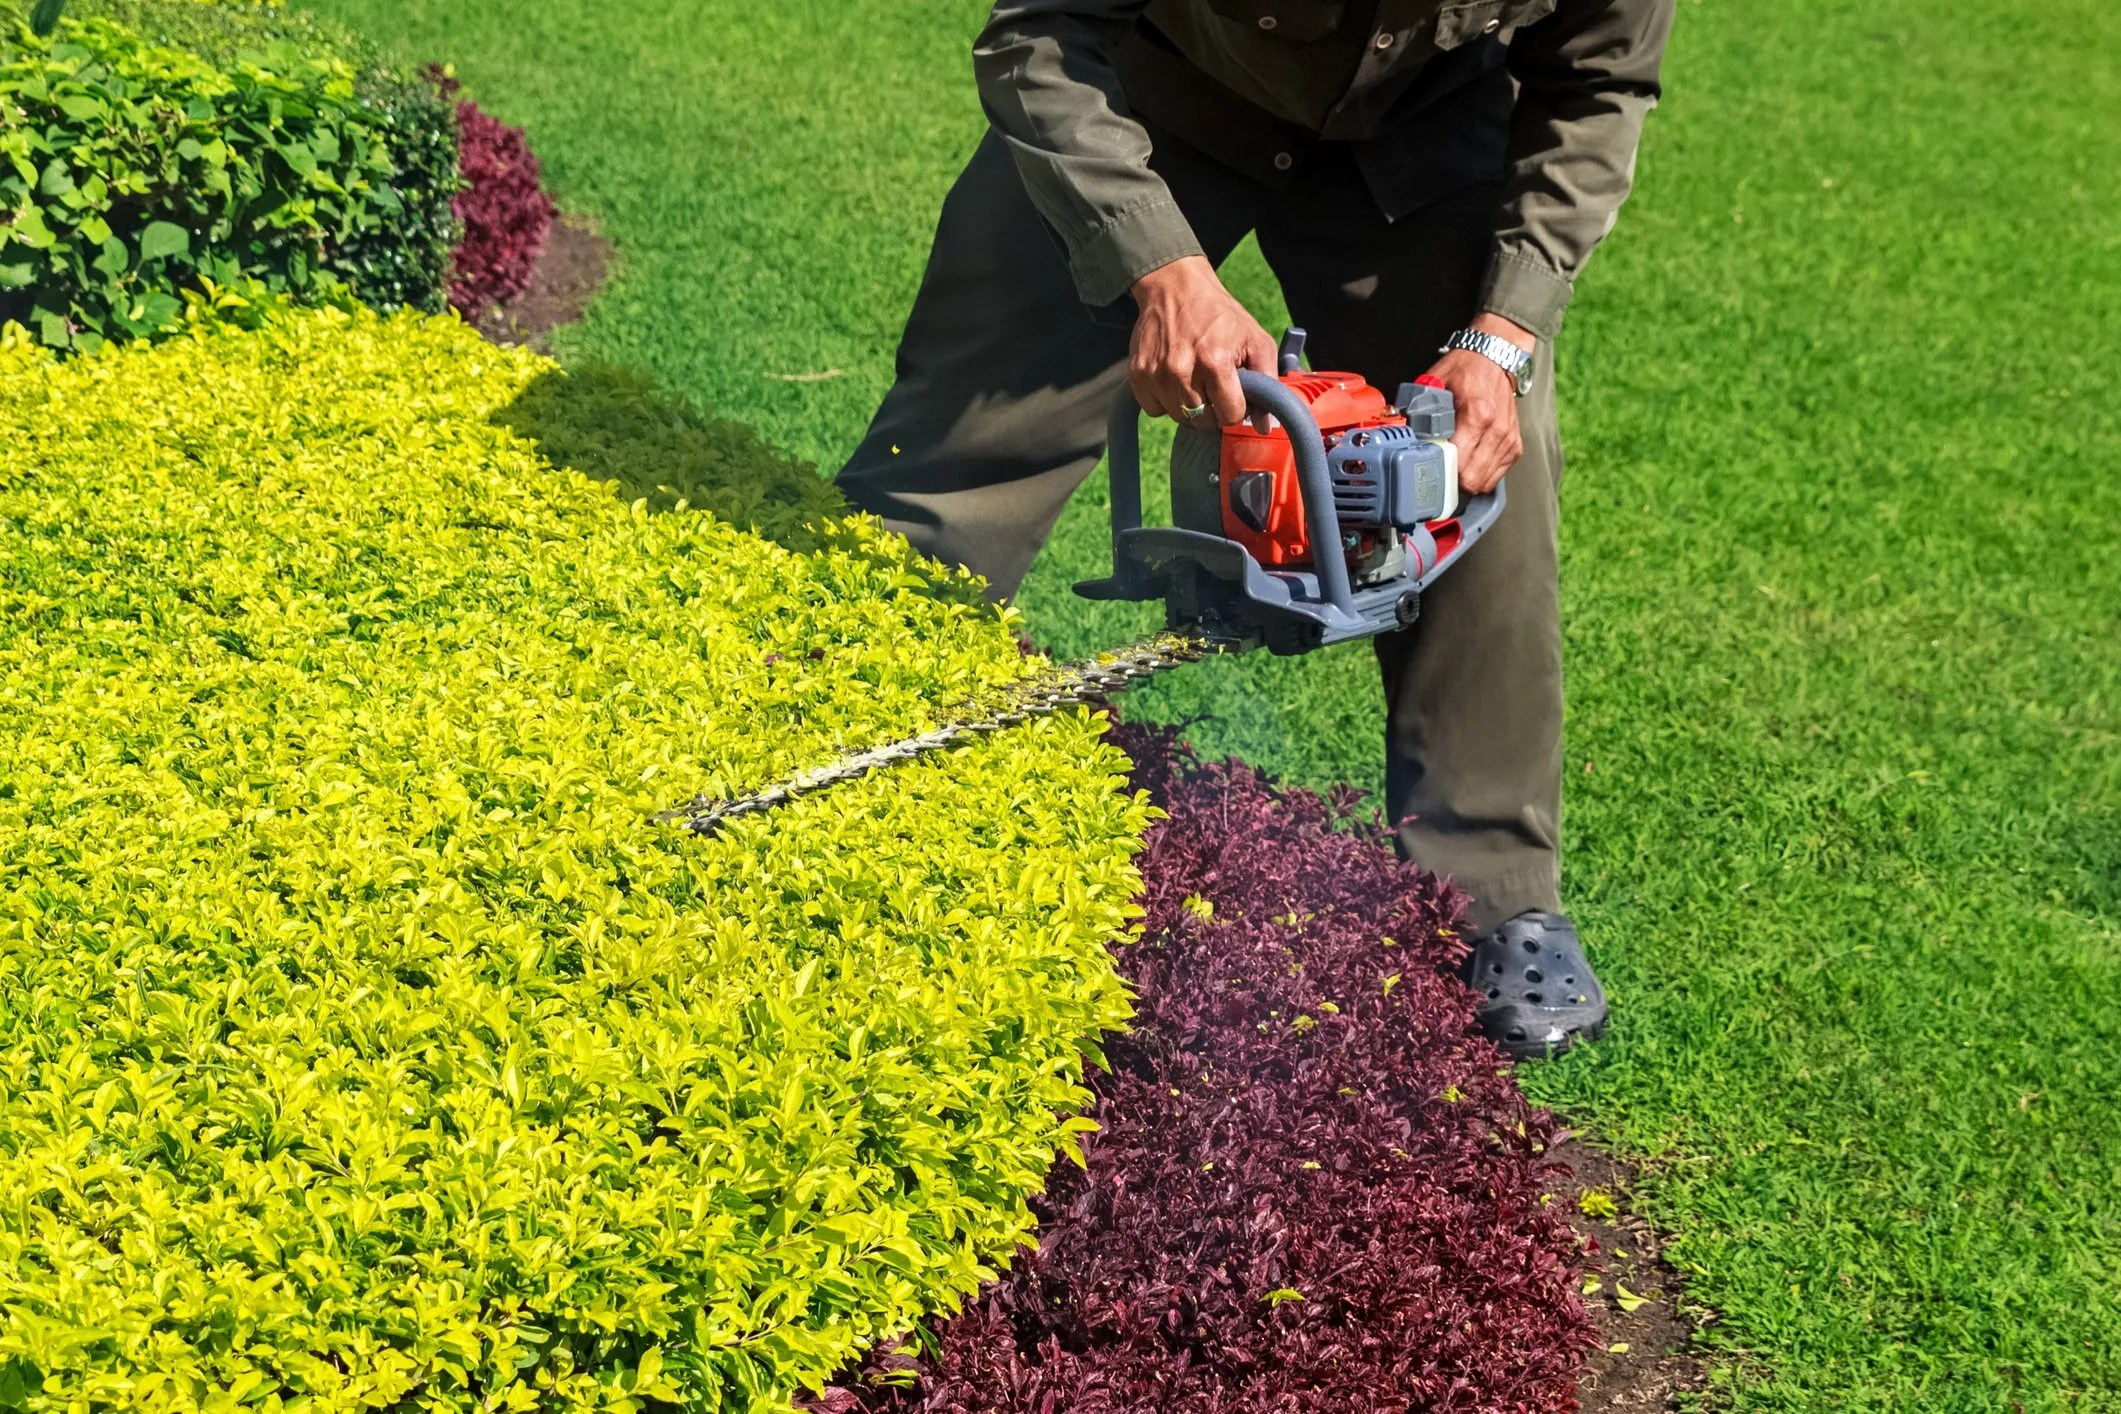 gardener-trimming-shrub-with-hedge-trimmer-48881871